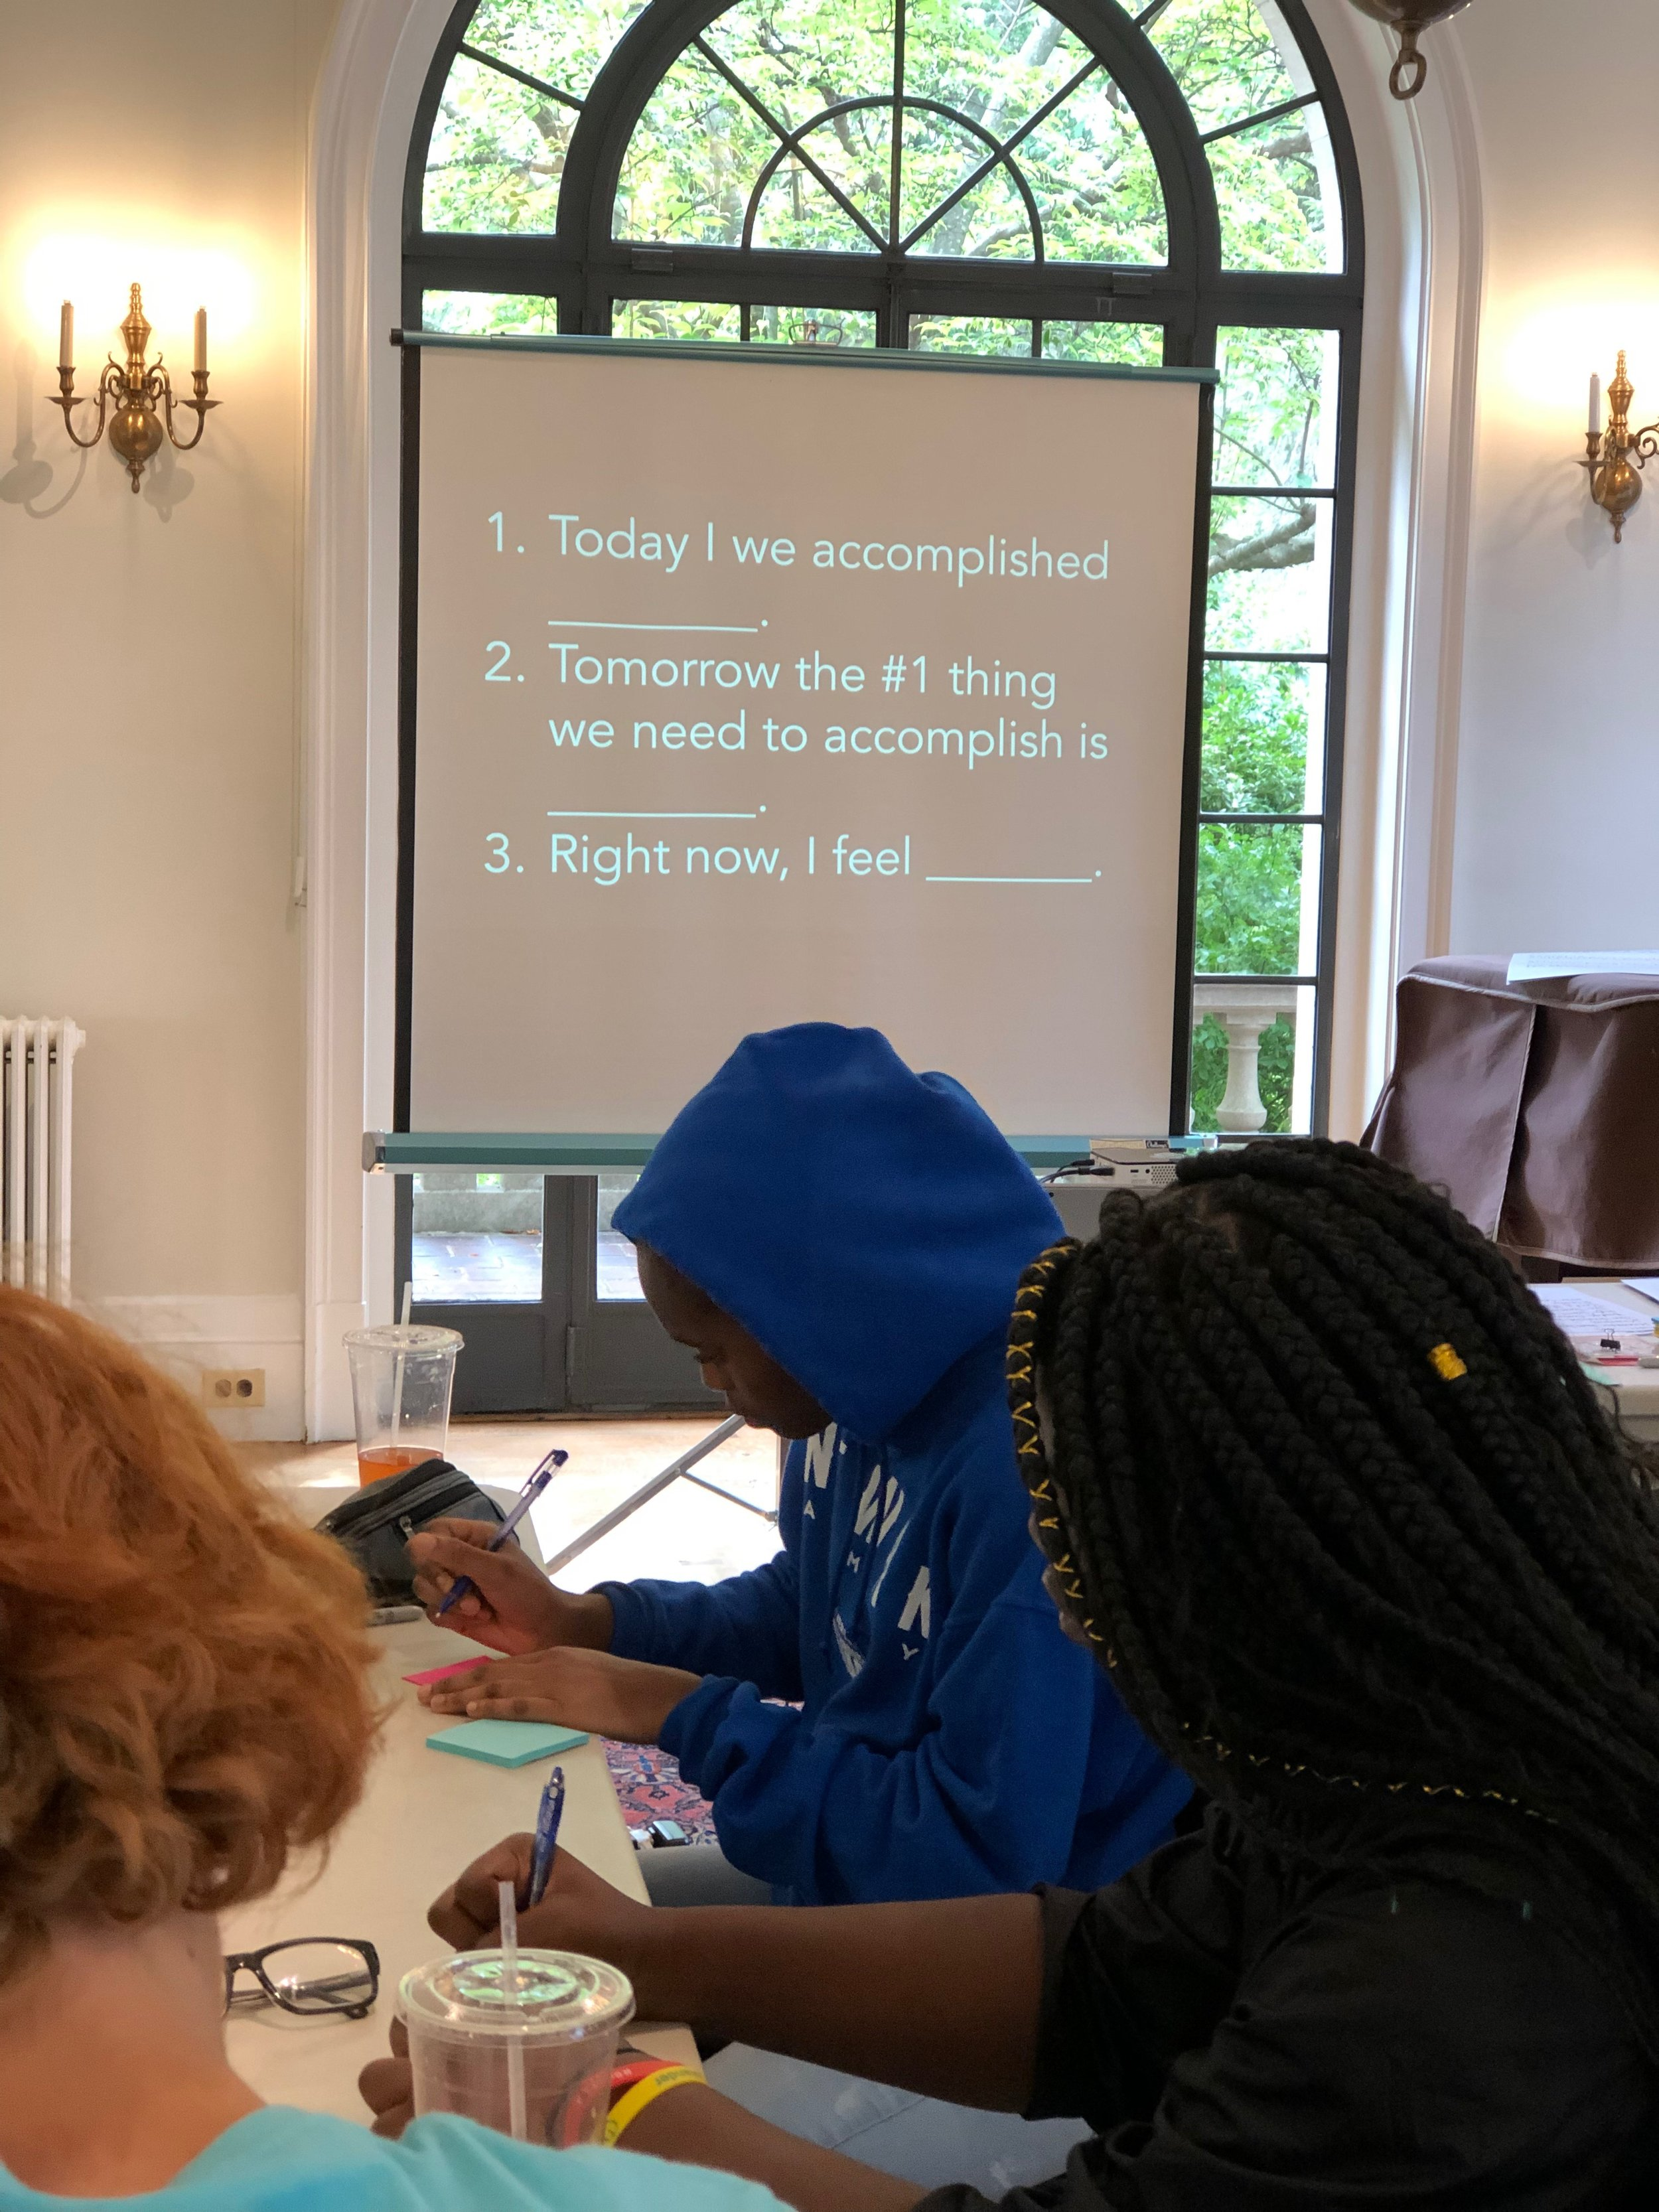 Students from Benedictine Academy and St. Benedict's Prep engage in an end-of-day reflection that consolidates learning by addressing both the head and the heart.